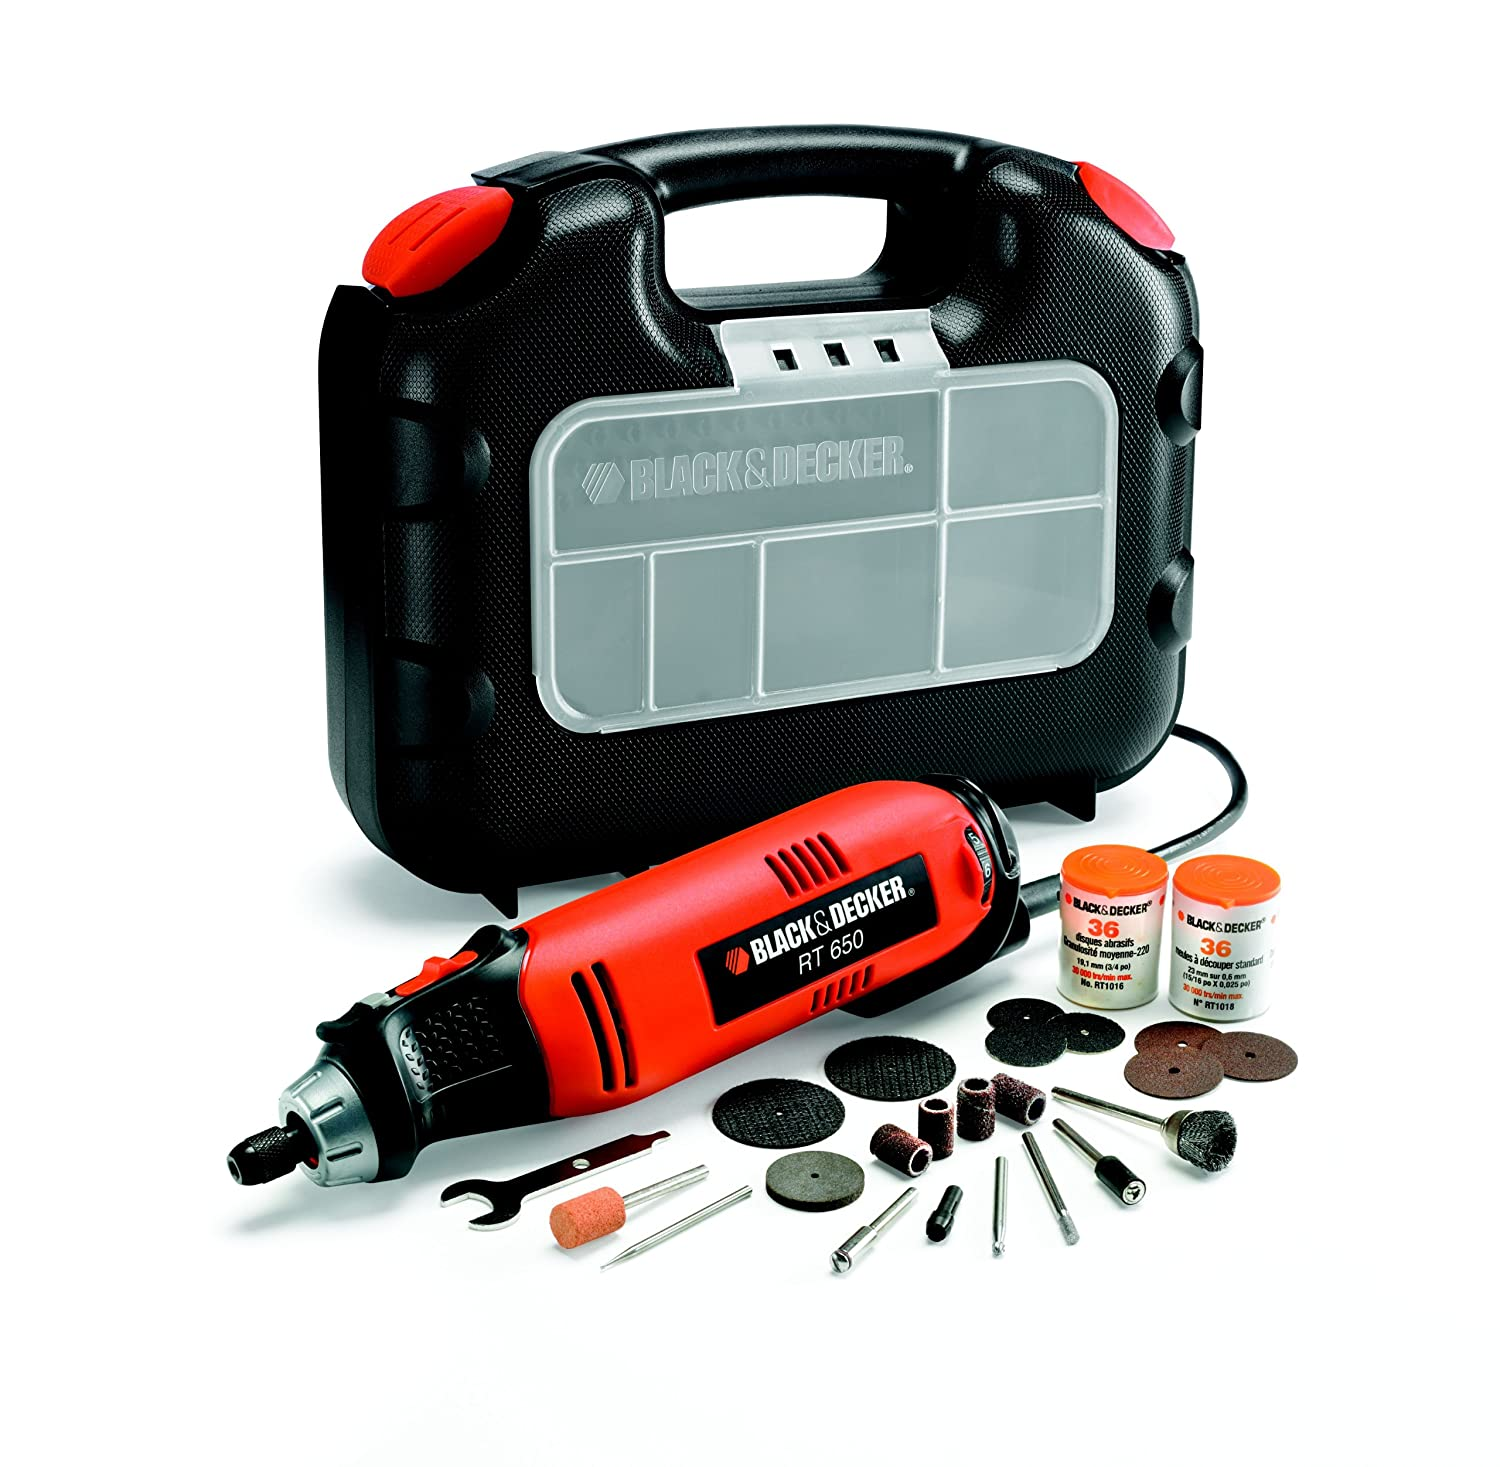 Herramienta multiusos Black and Decker RT650KA-QS con 87 accesorios